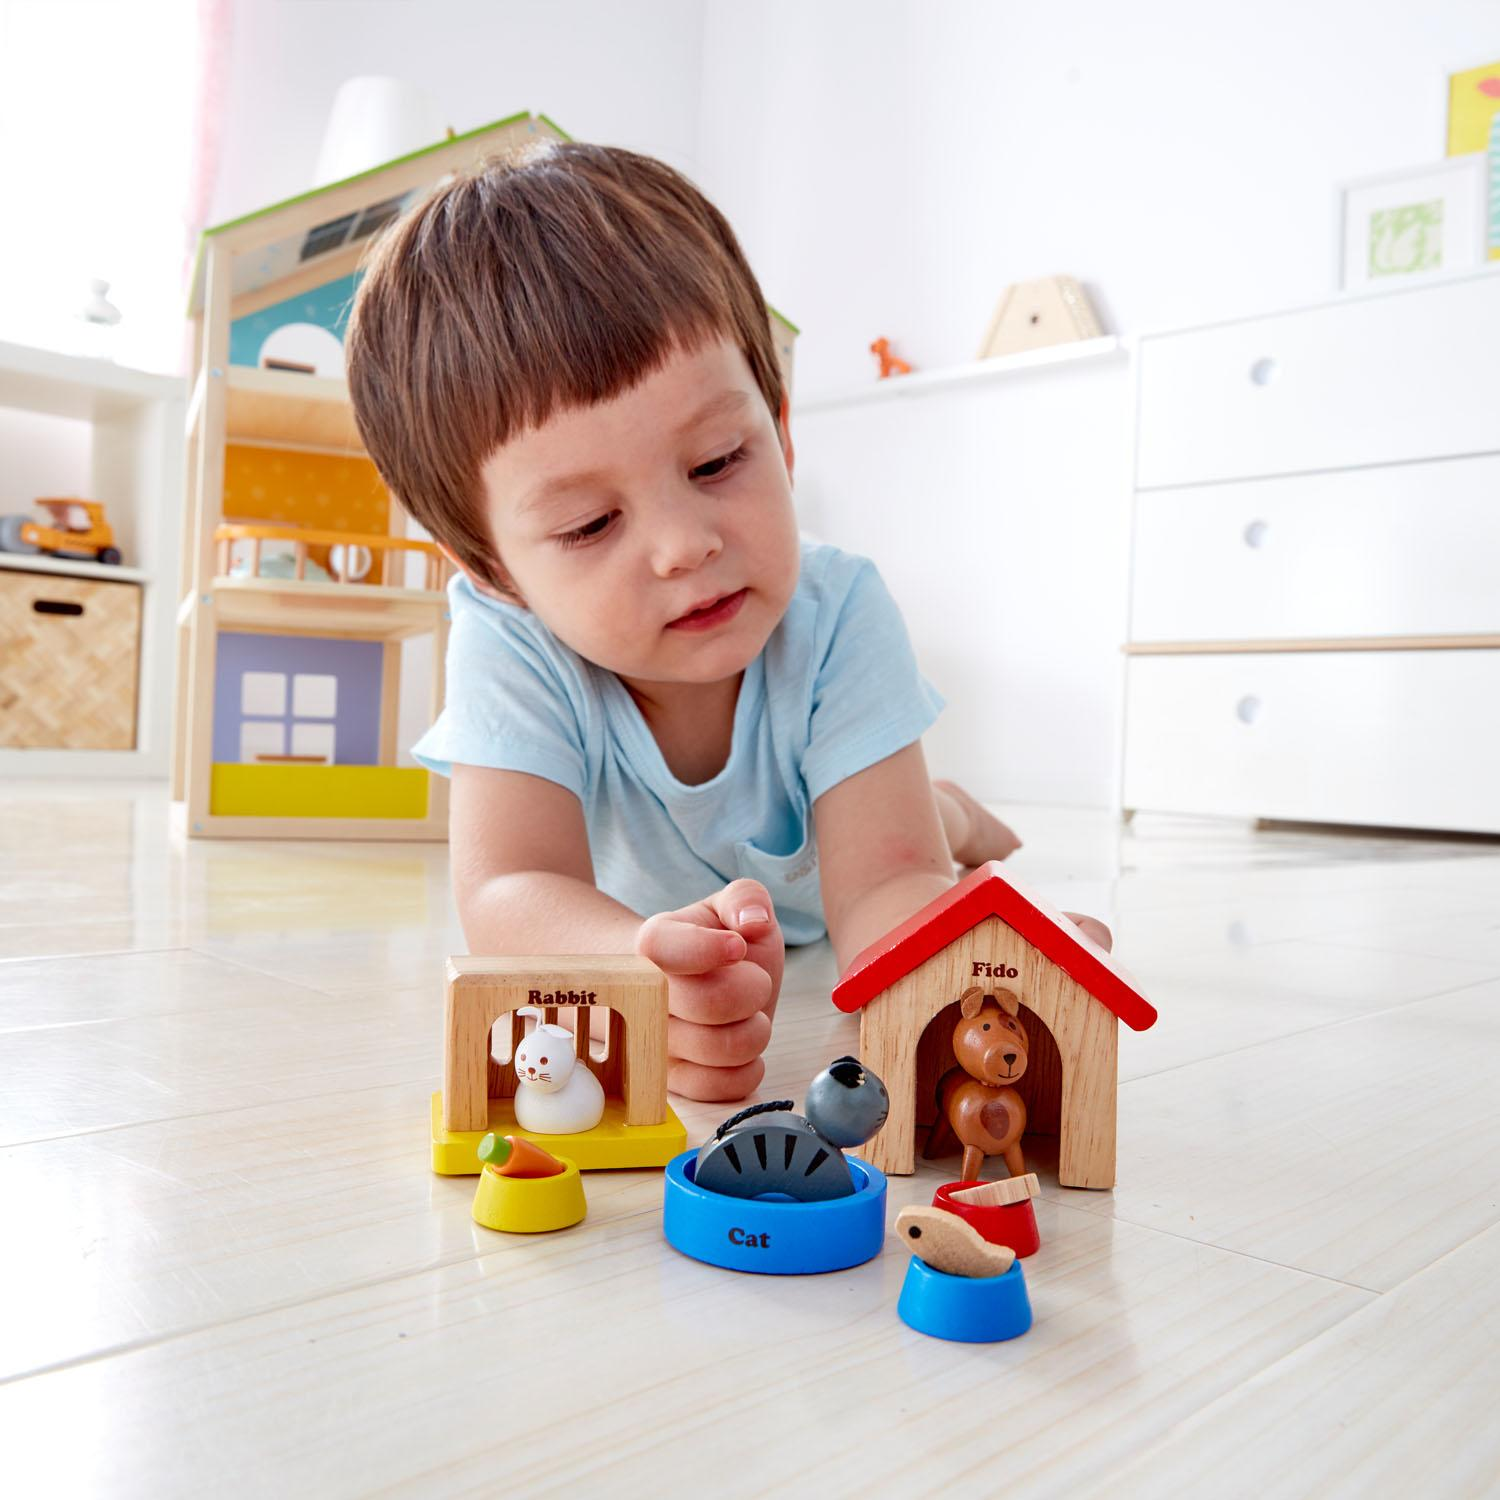 Child lying on the floor in a light coloured bedroom playing with the dolls house pets.